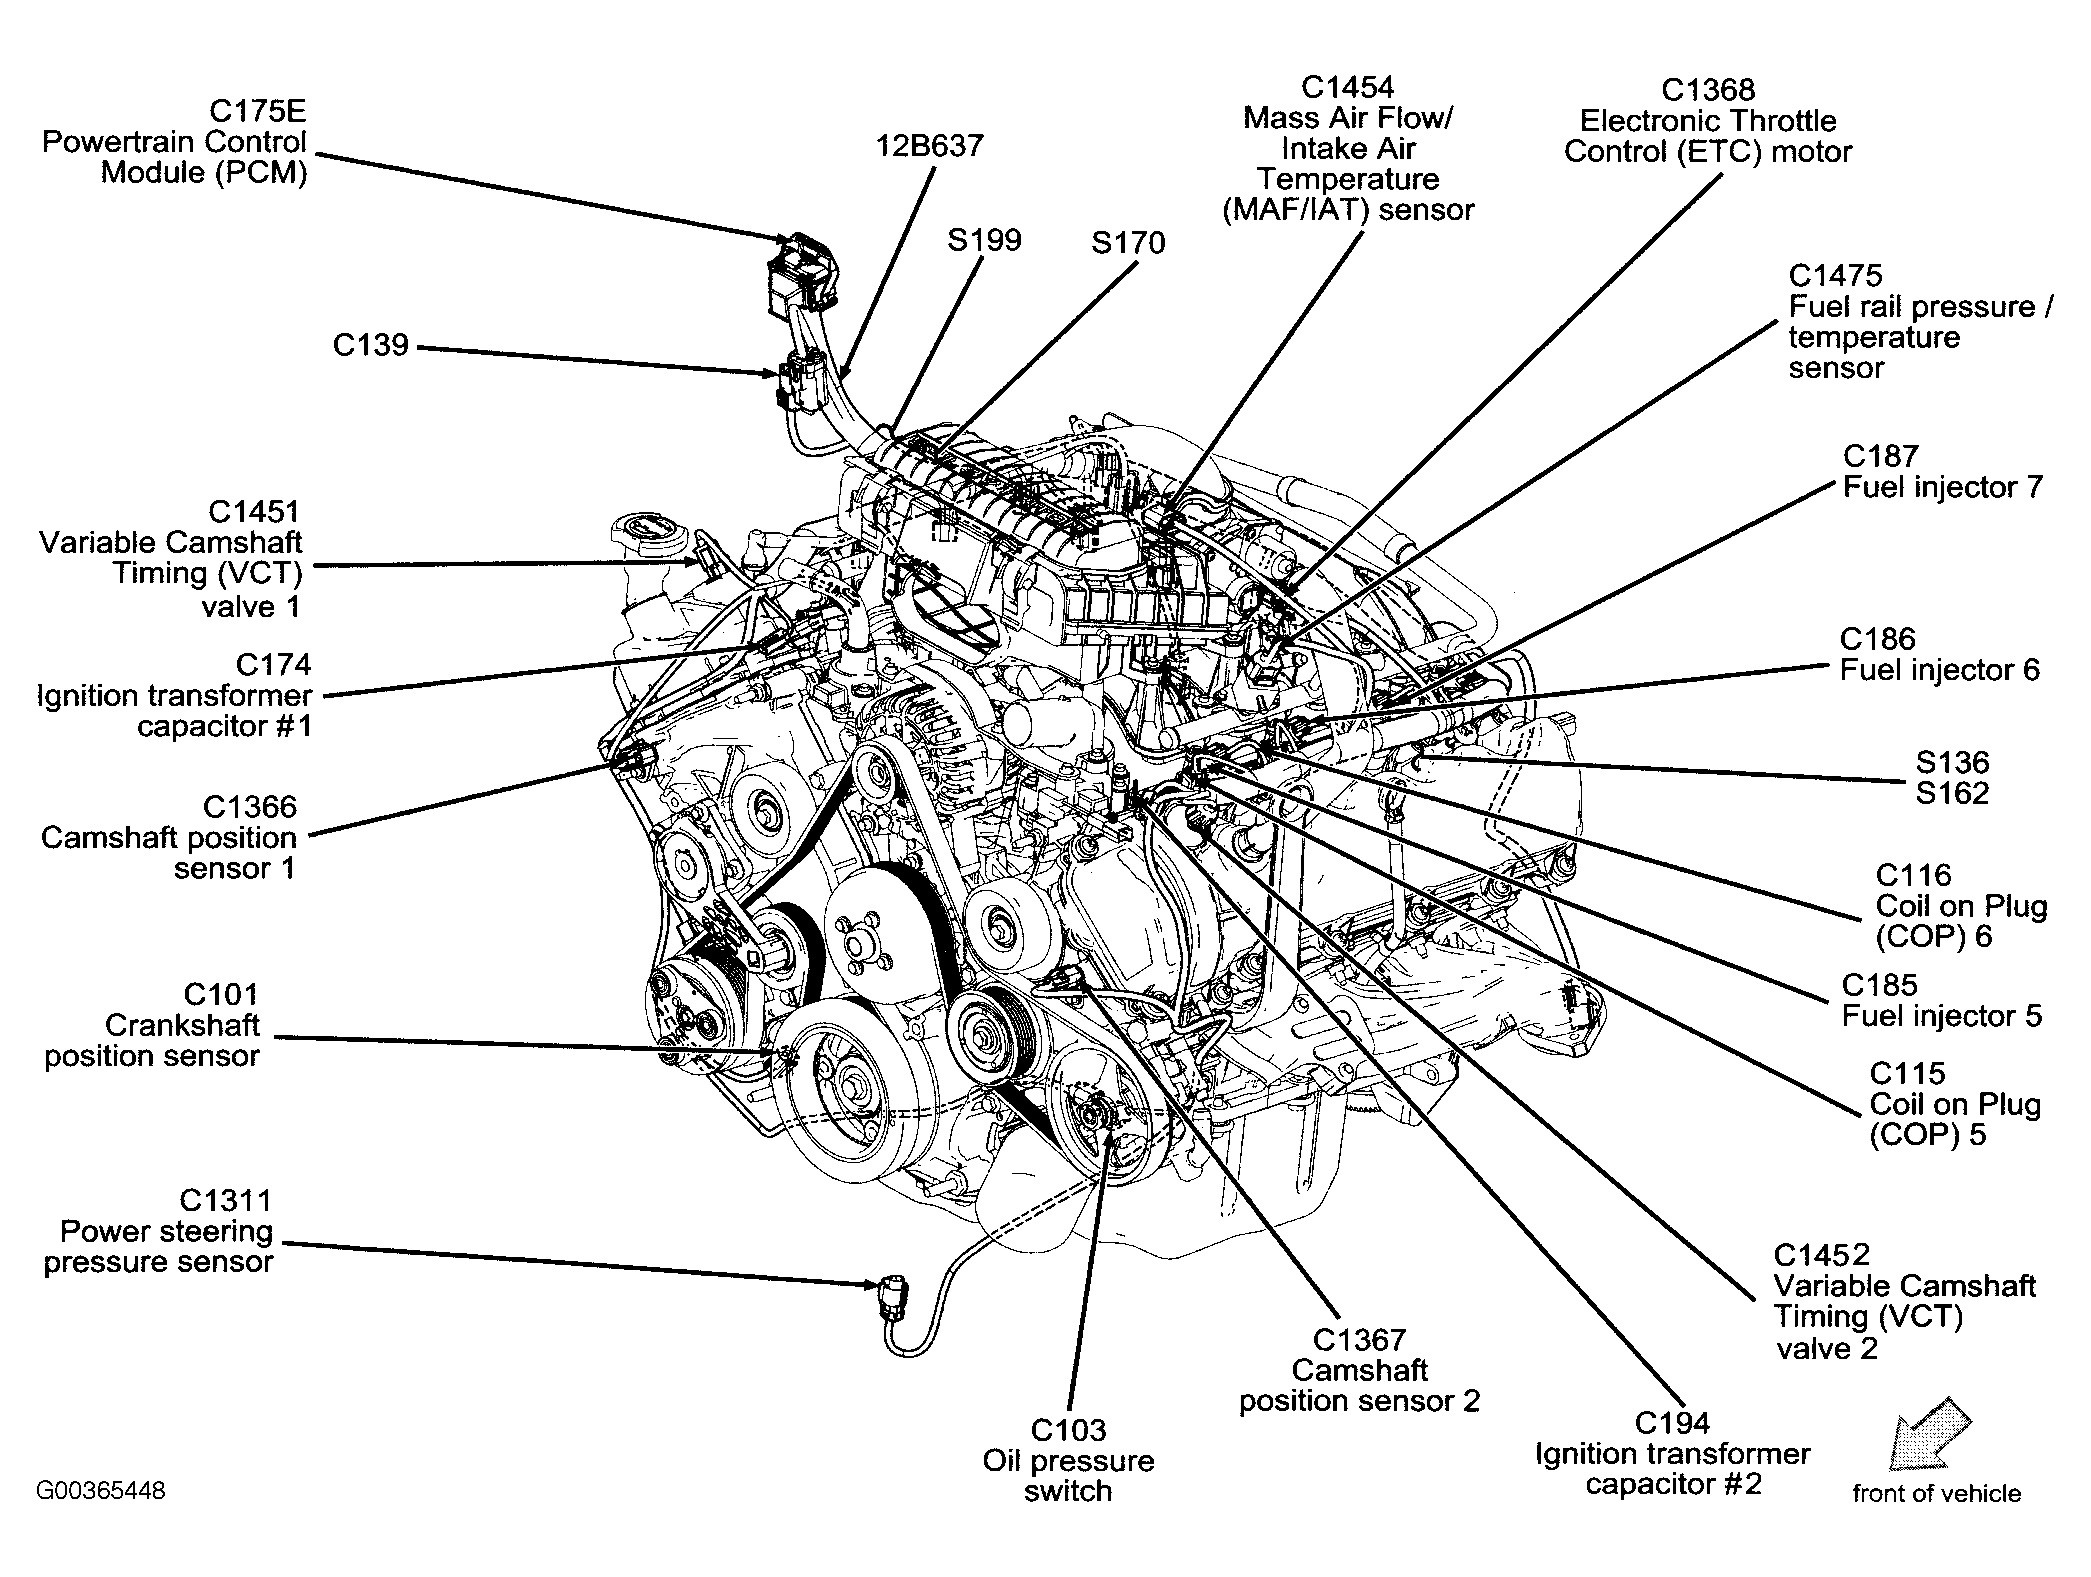 Ford Escape Engine Diagram ford Escape Engine Diagram Simple Guide About Wiring Diagram • Of Ford Escape Engine Diagram